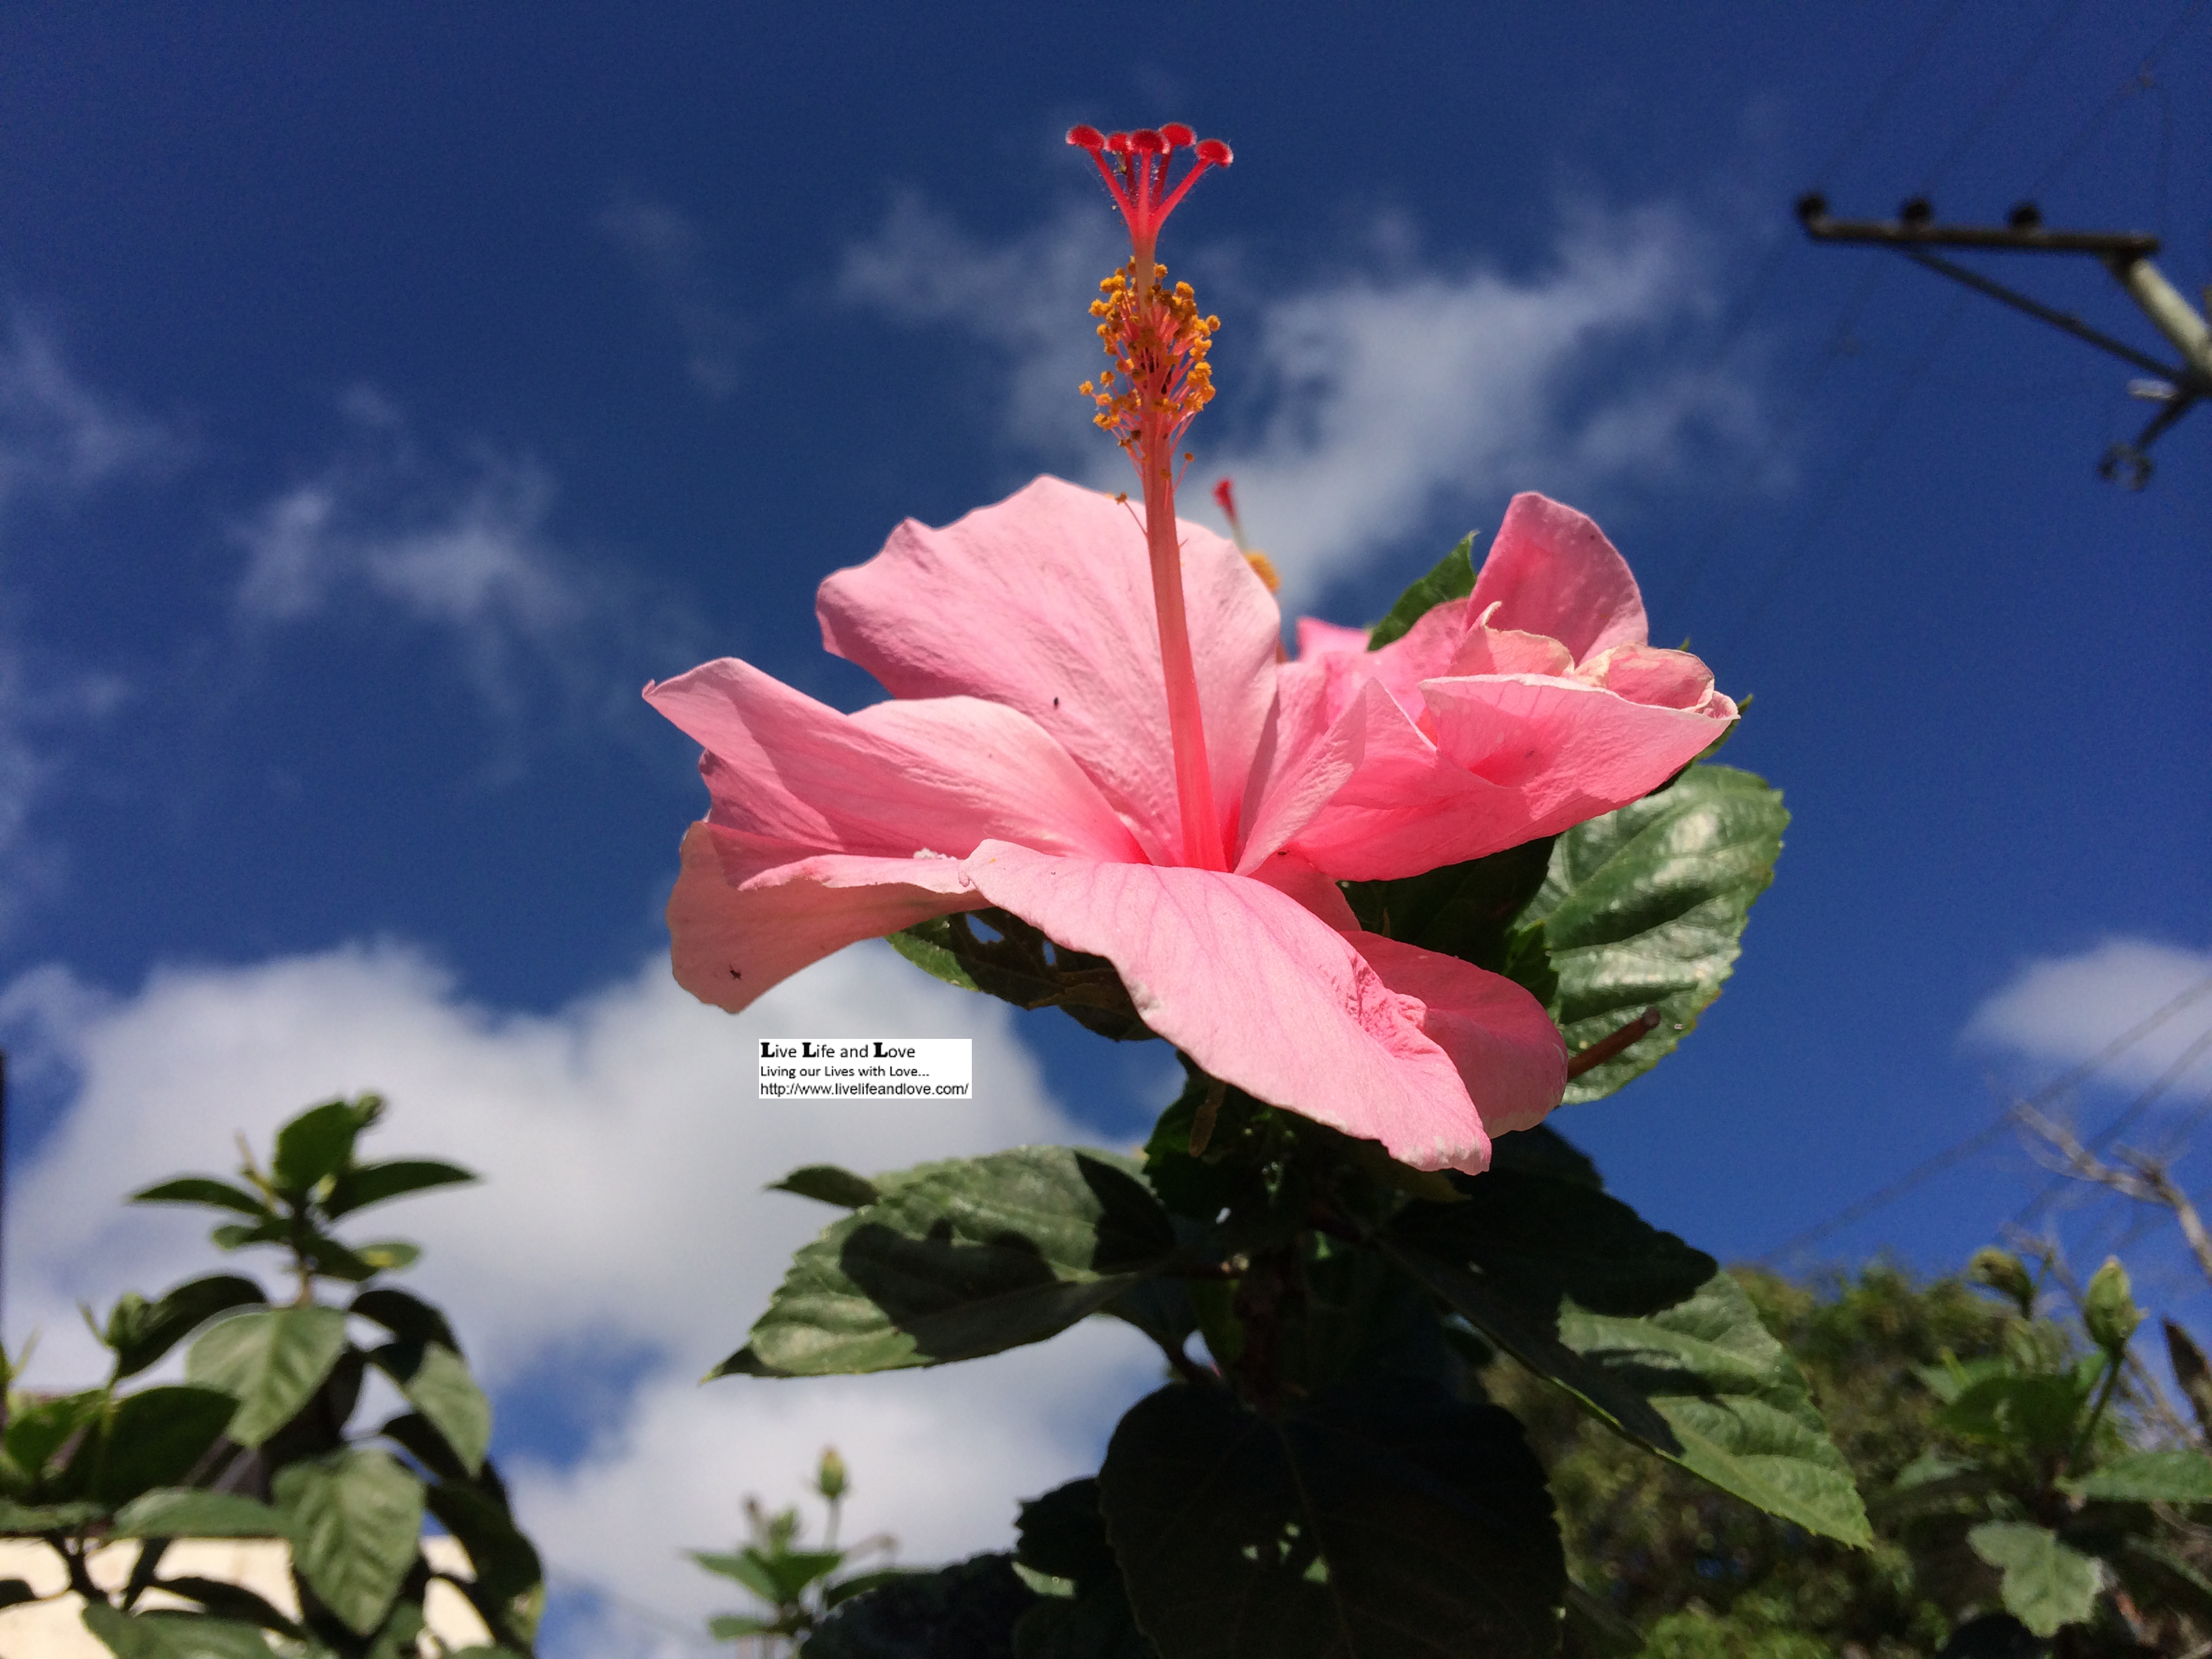 Hibiscus rosa sinensis or gumamela flower live life and love light pink hibiscus flower against the blue sky with clouds izmirmasajfo